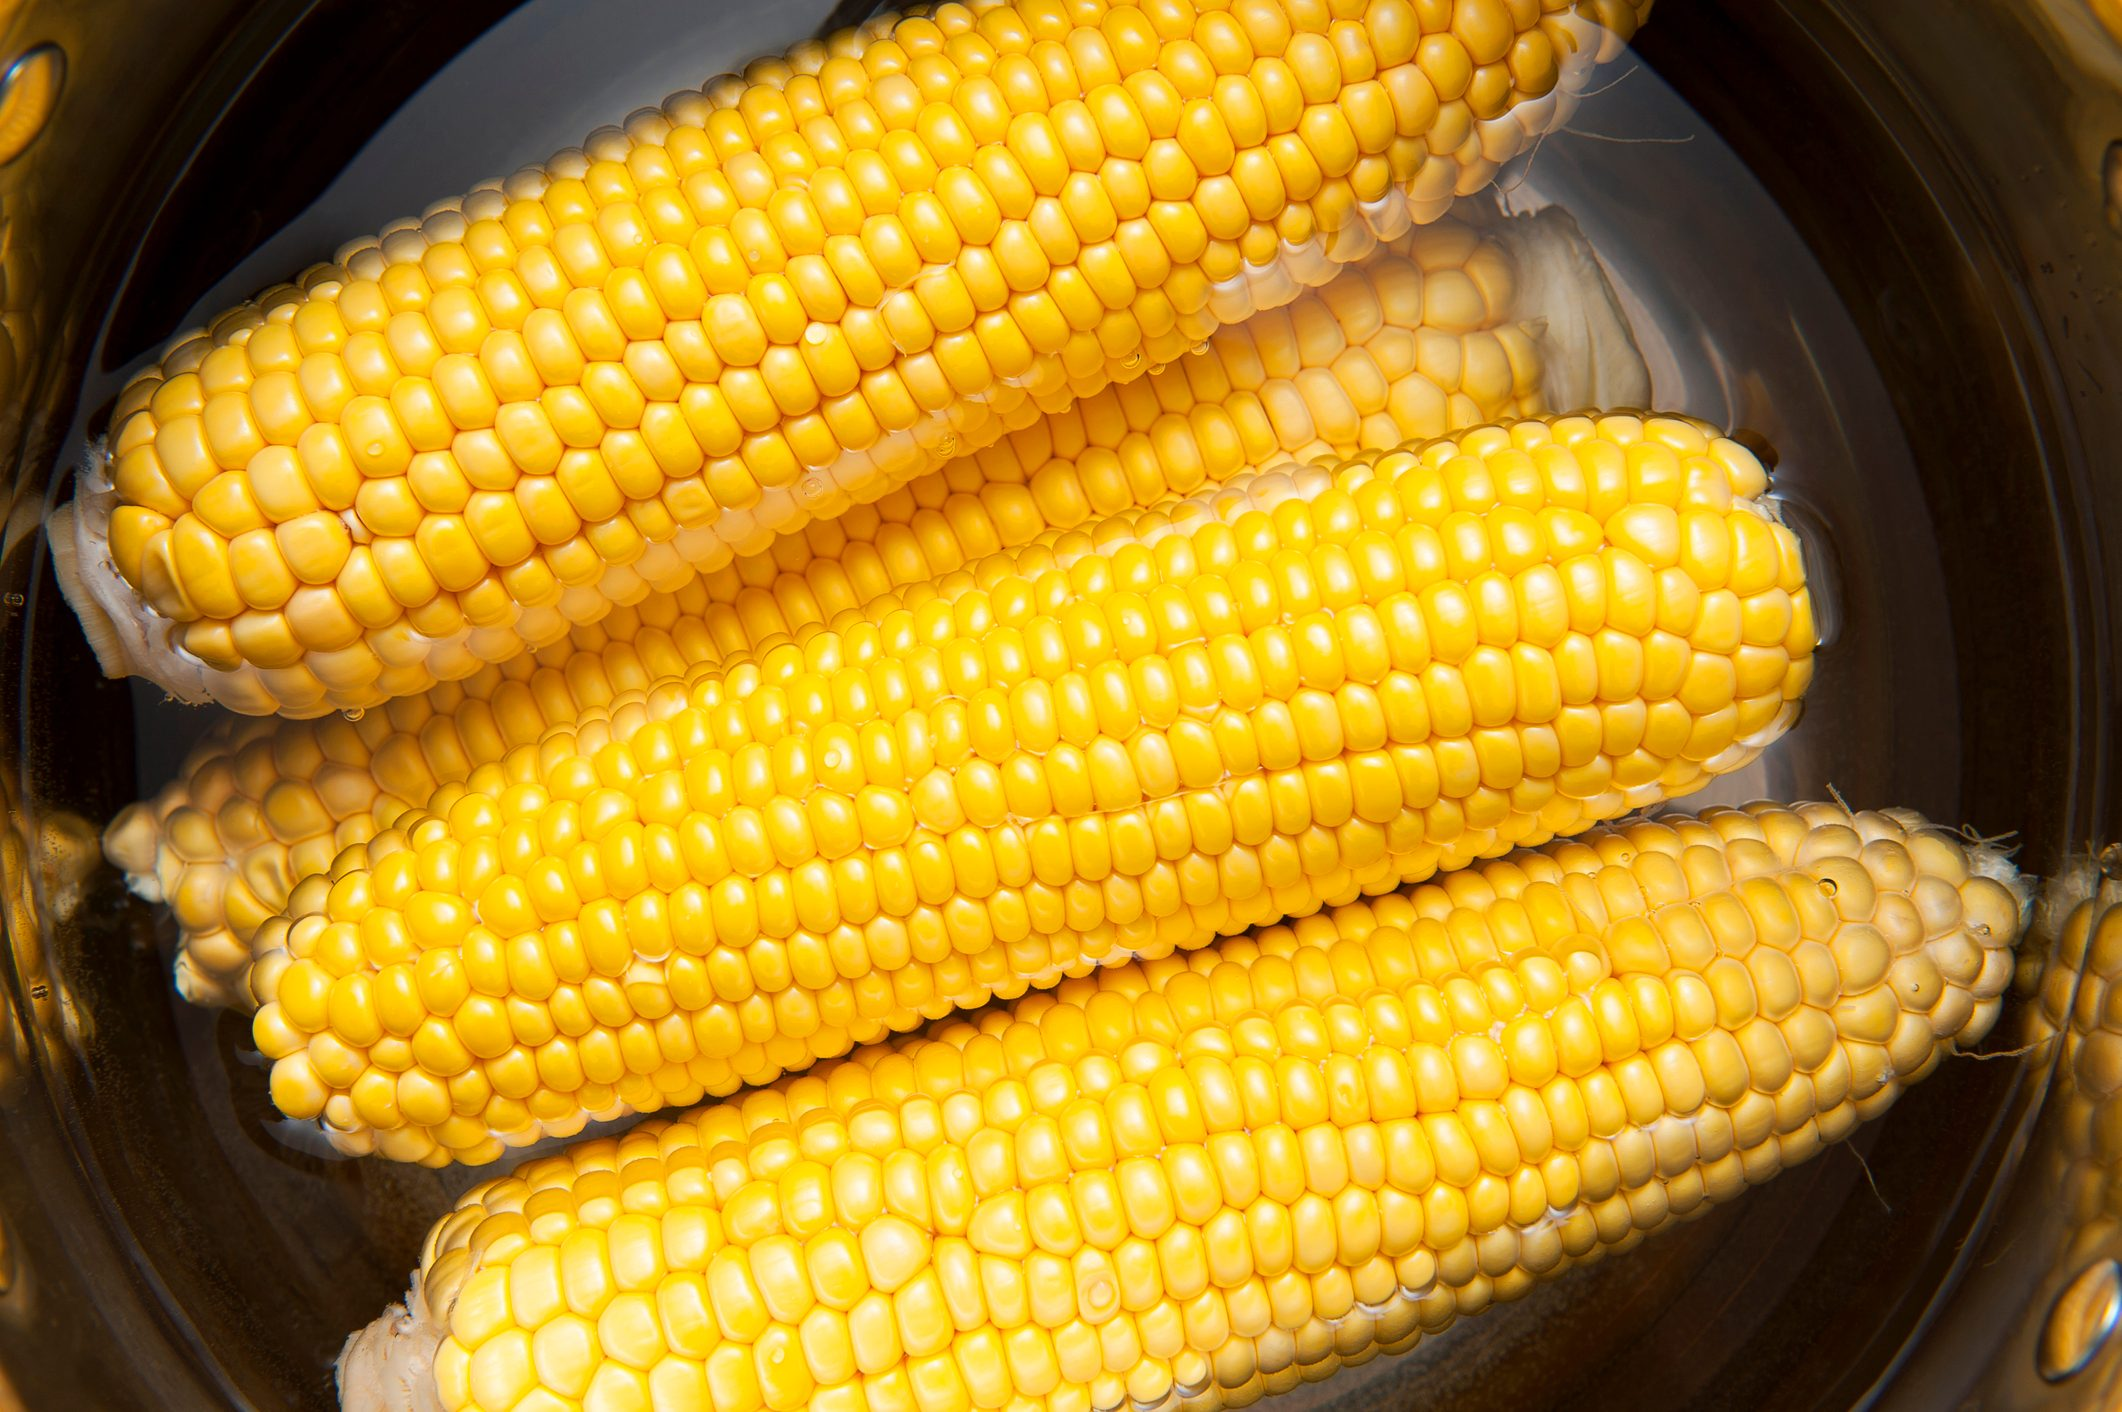 Corn cobs boiling in the water